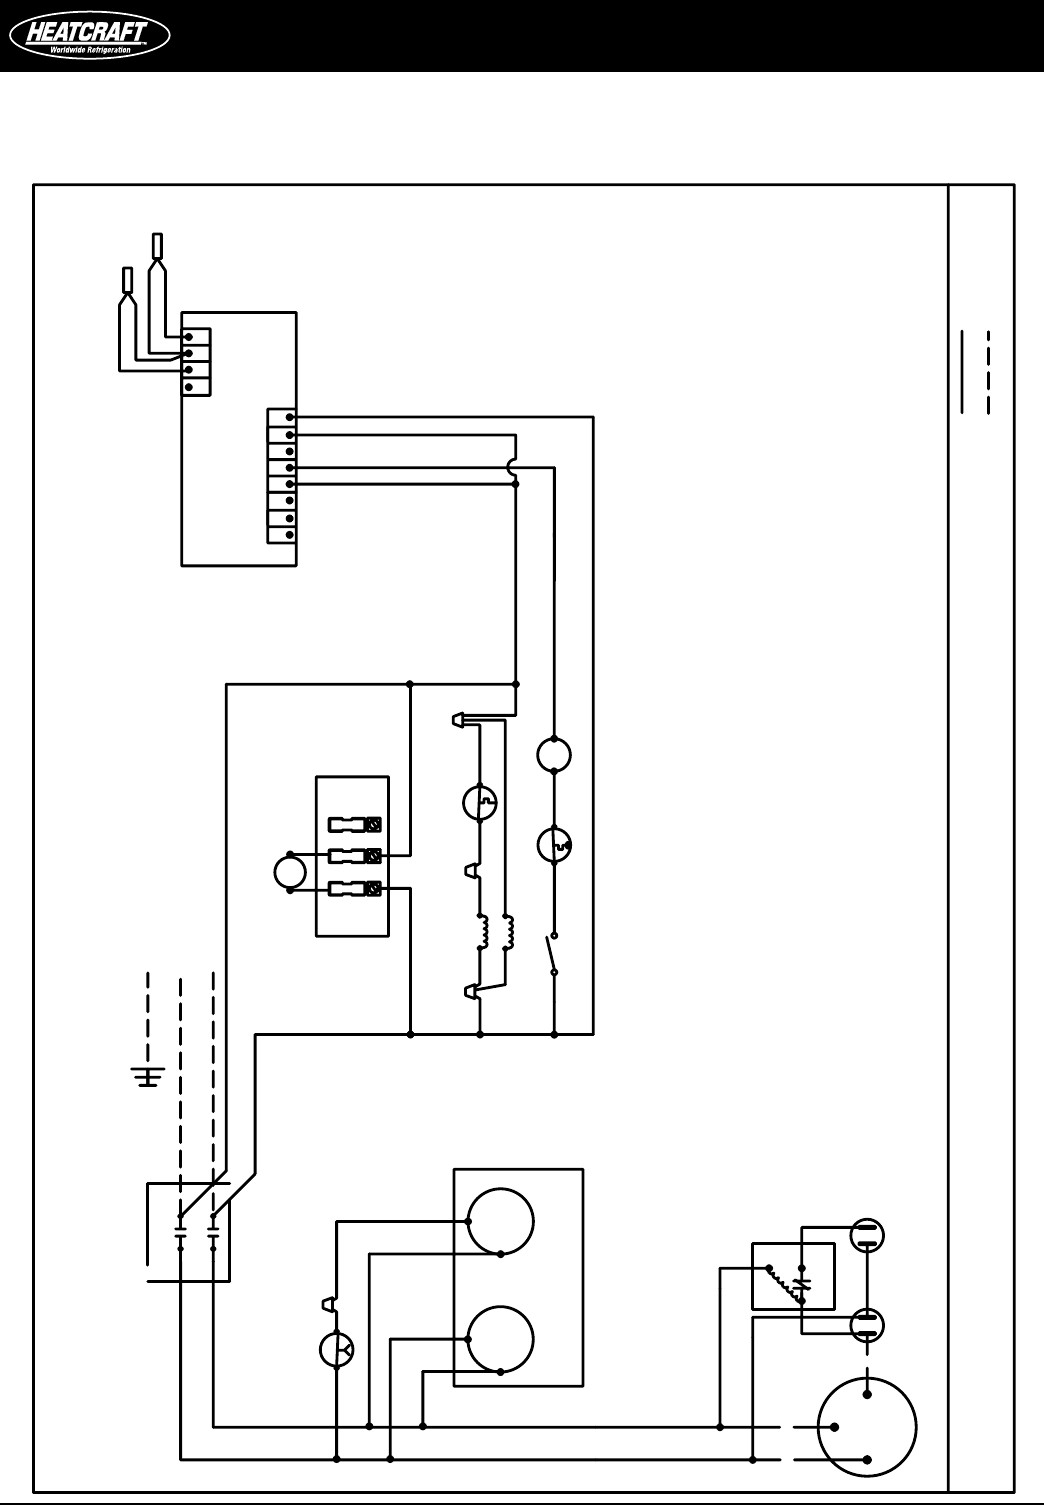 Find Out Here Heatcraft Walk In Freezer Wiring Diagram Sample